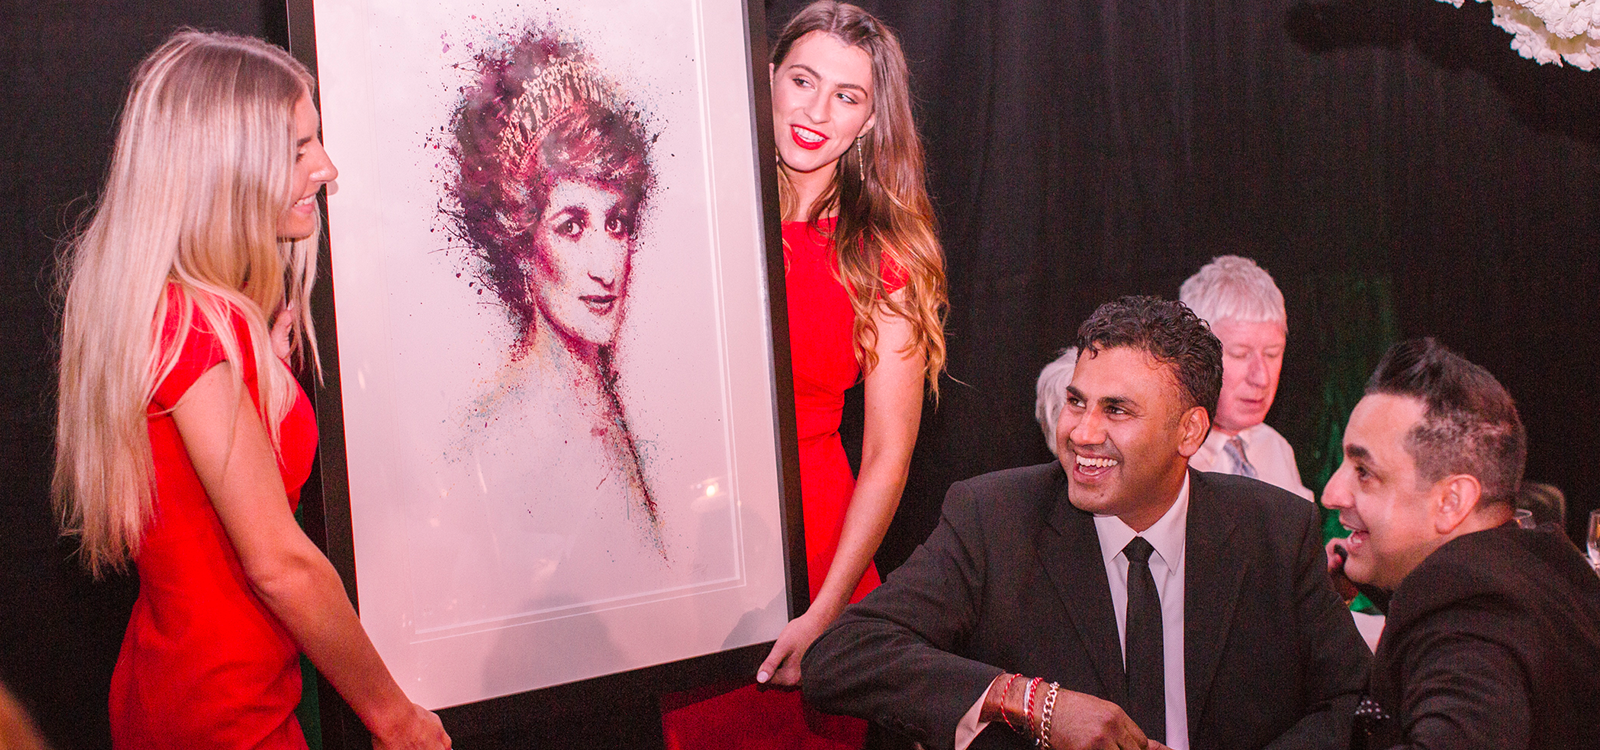 Carita team holding a portrait of Princess Diana.